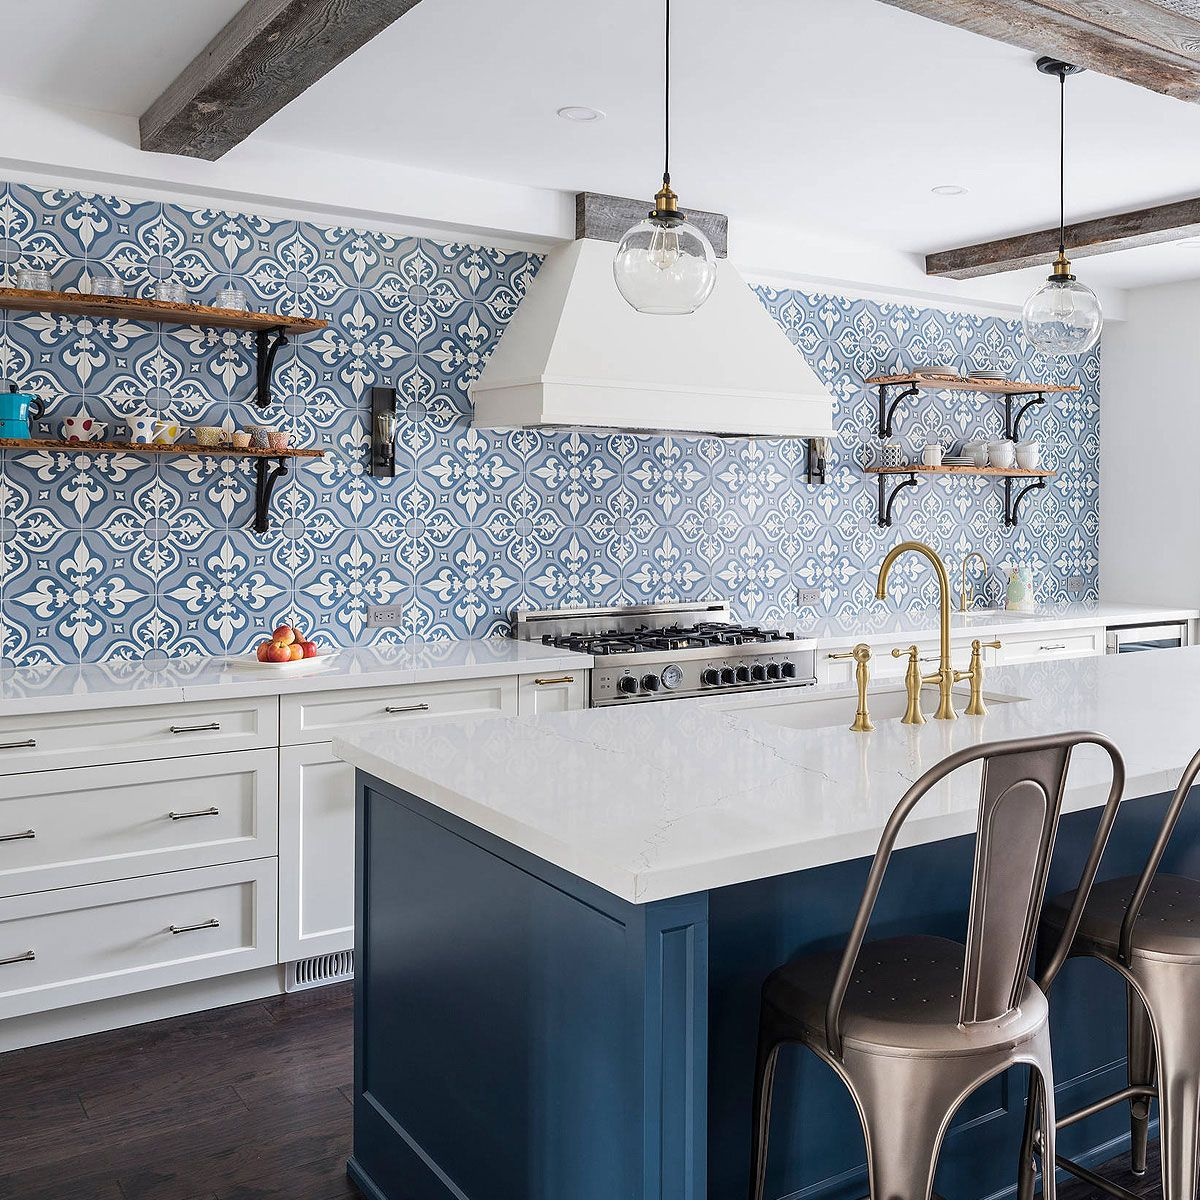 75 Blue Backsplash Ideas Navy Aqua Royal Or Coastal Blue Design Blue Backsplash Custom Kitchen Backsplash Blue Backsplash Kitchen